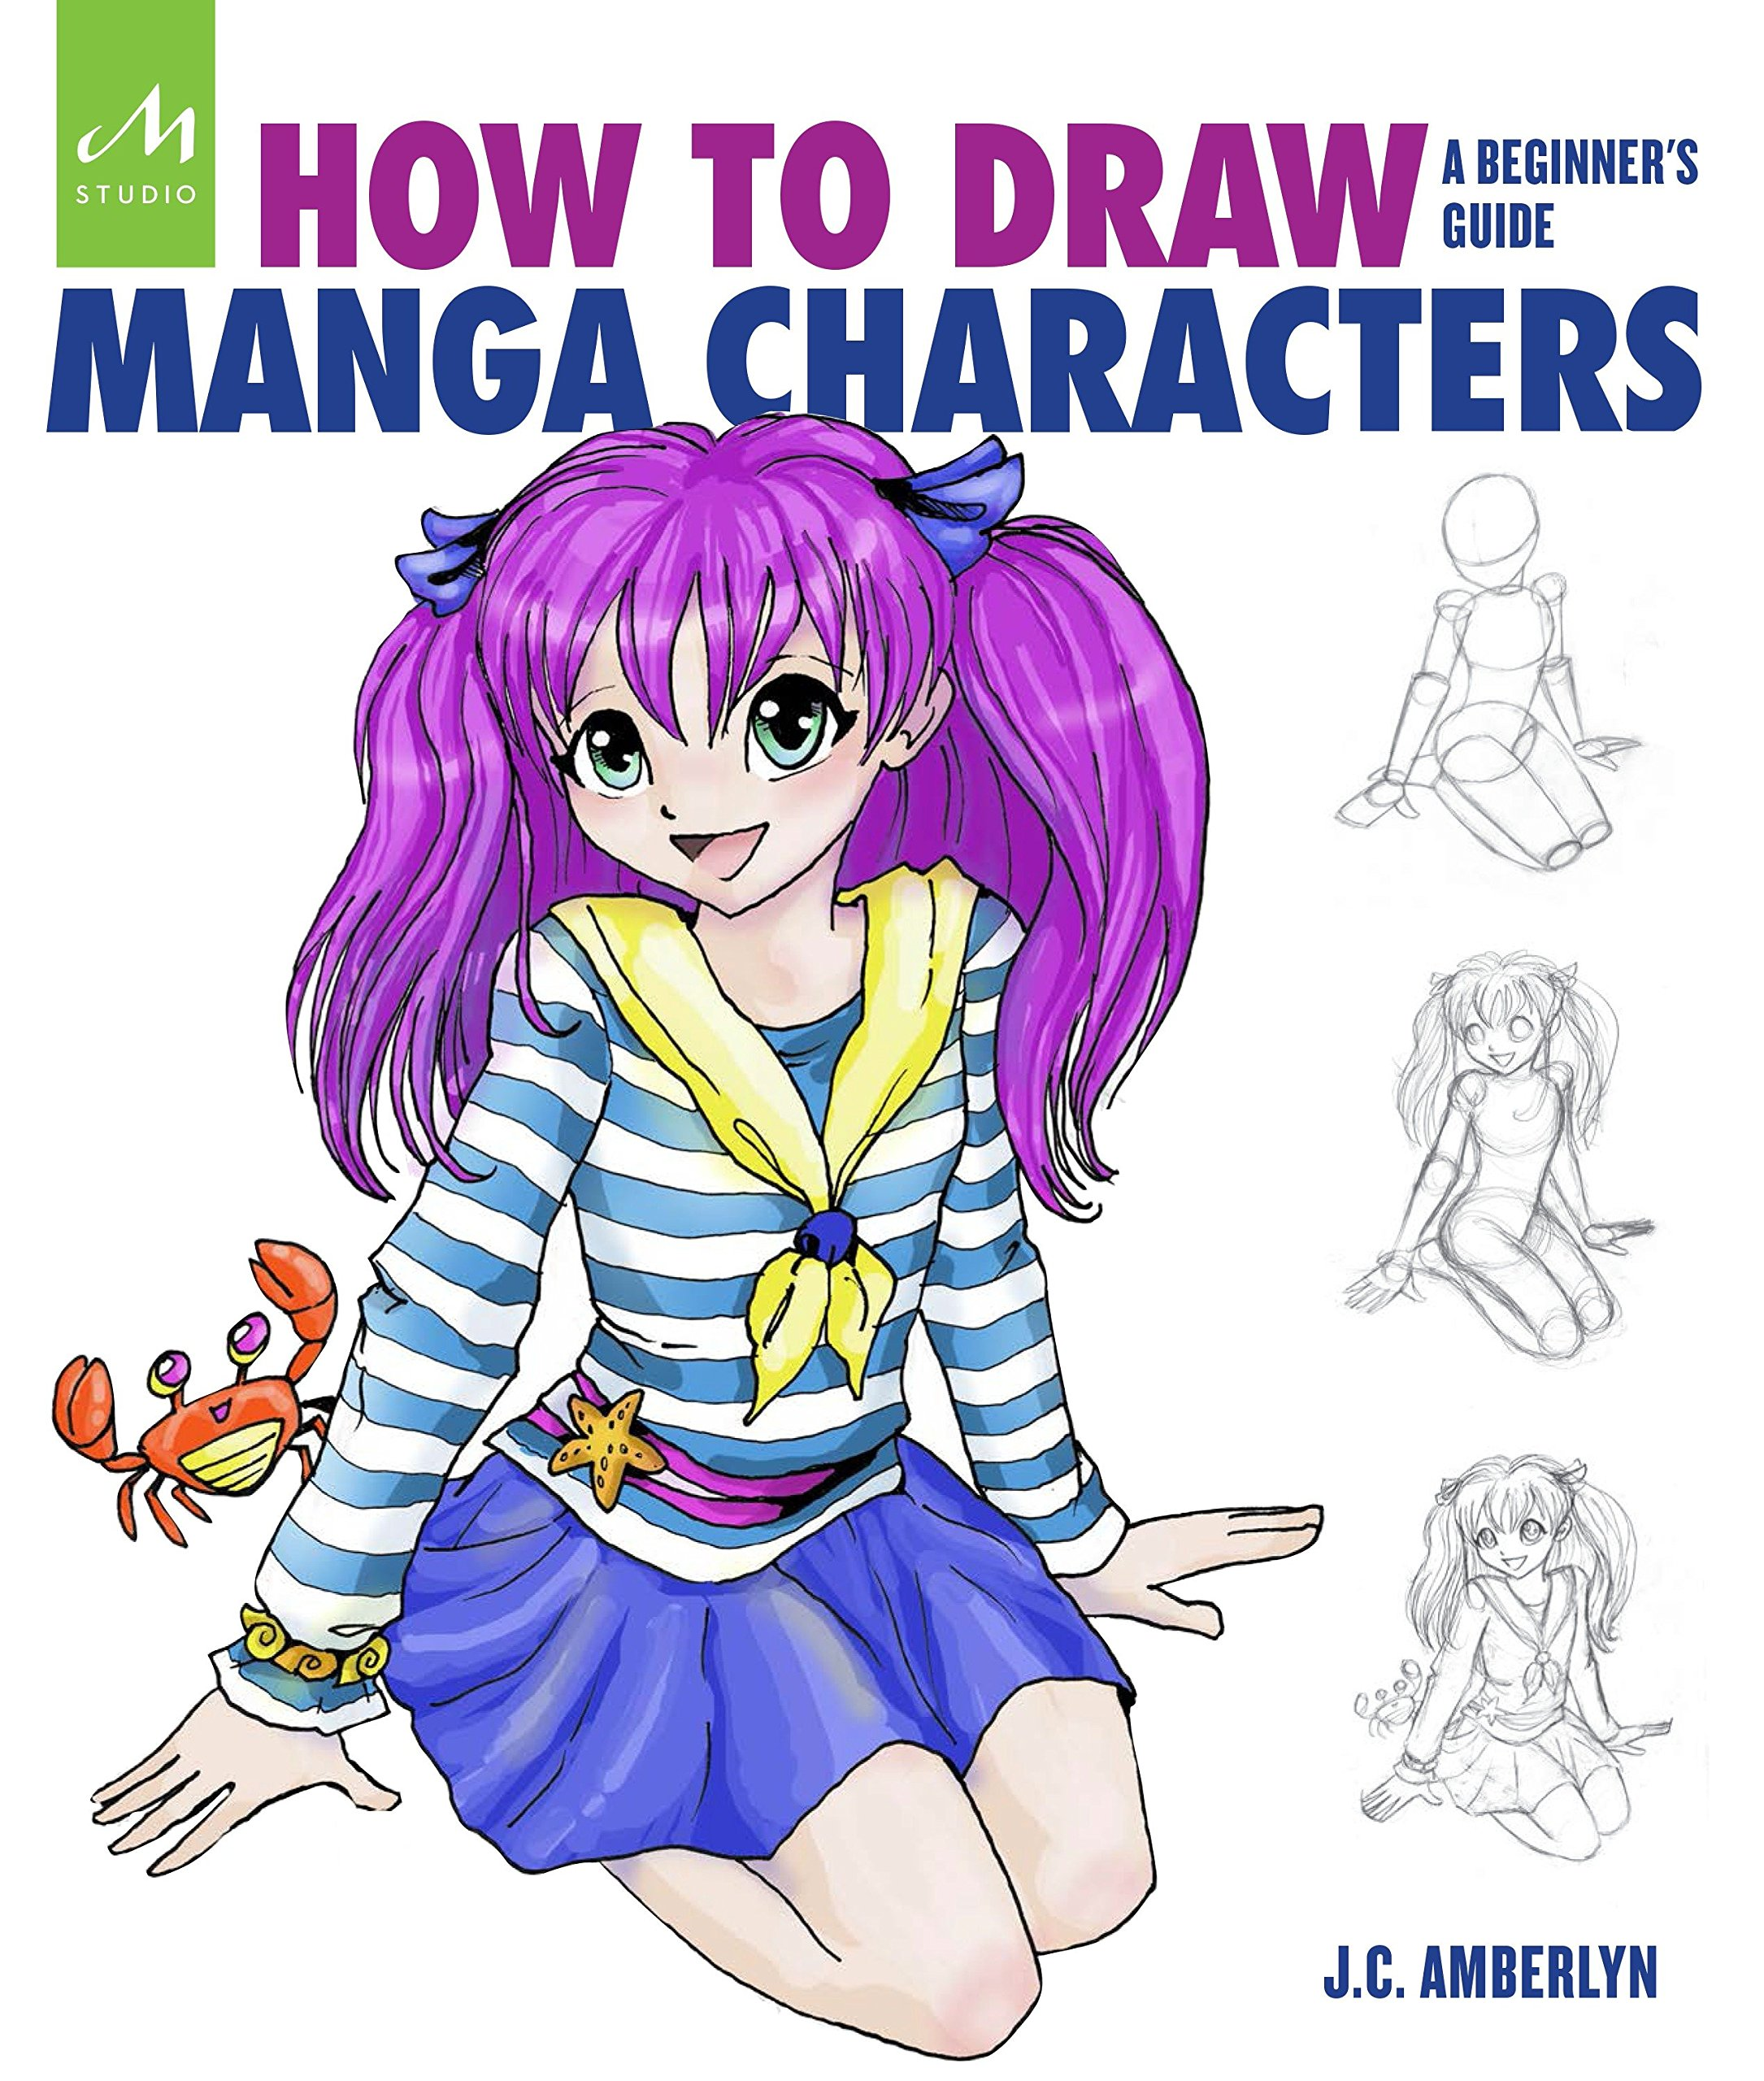 Download How to Draw Manga Characters: A Beginner's Guide PDF